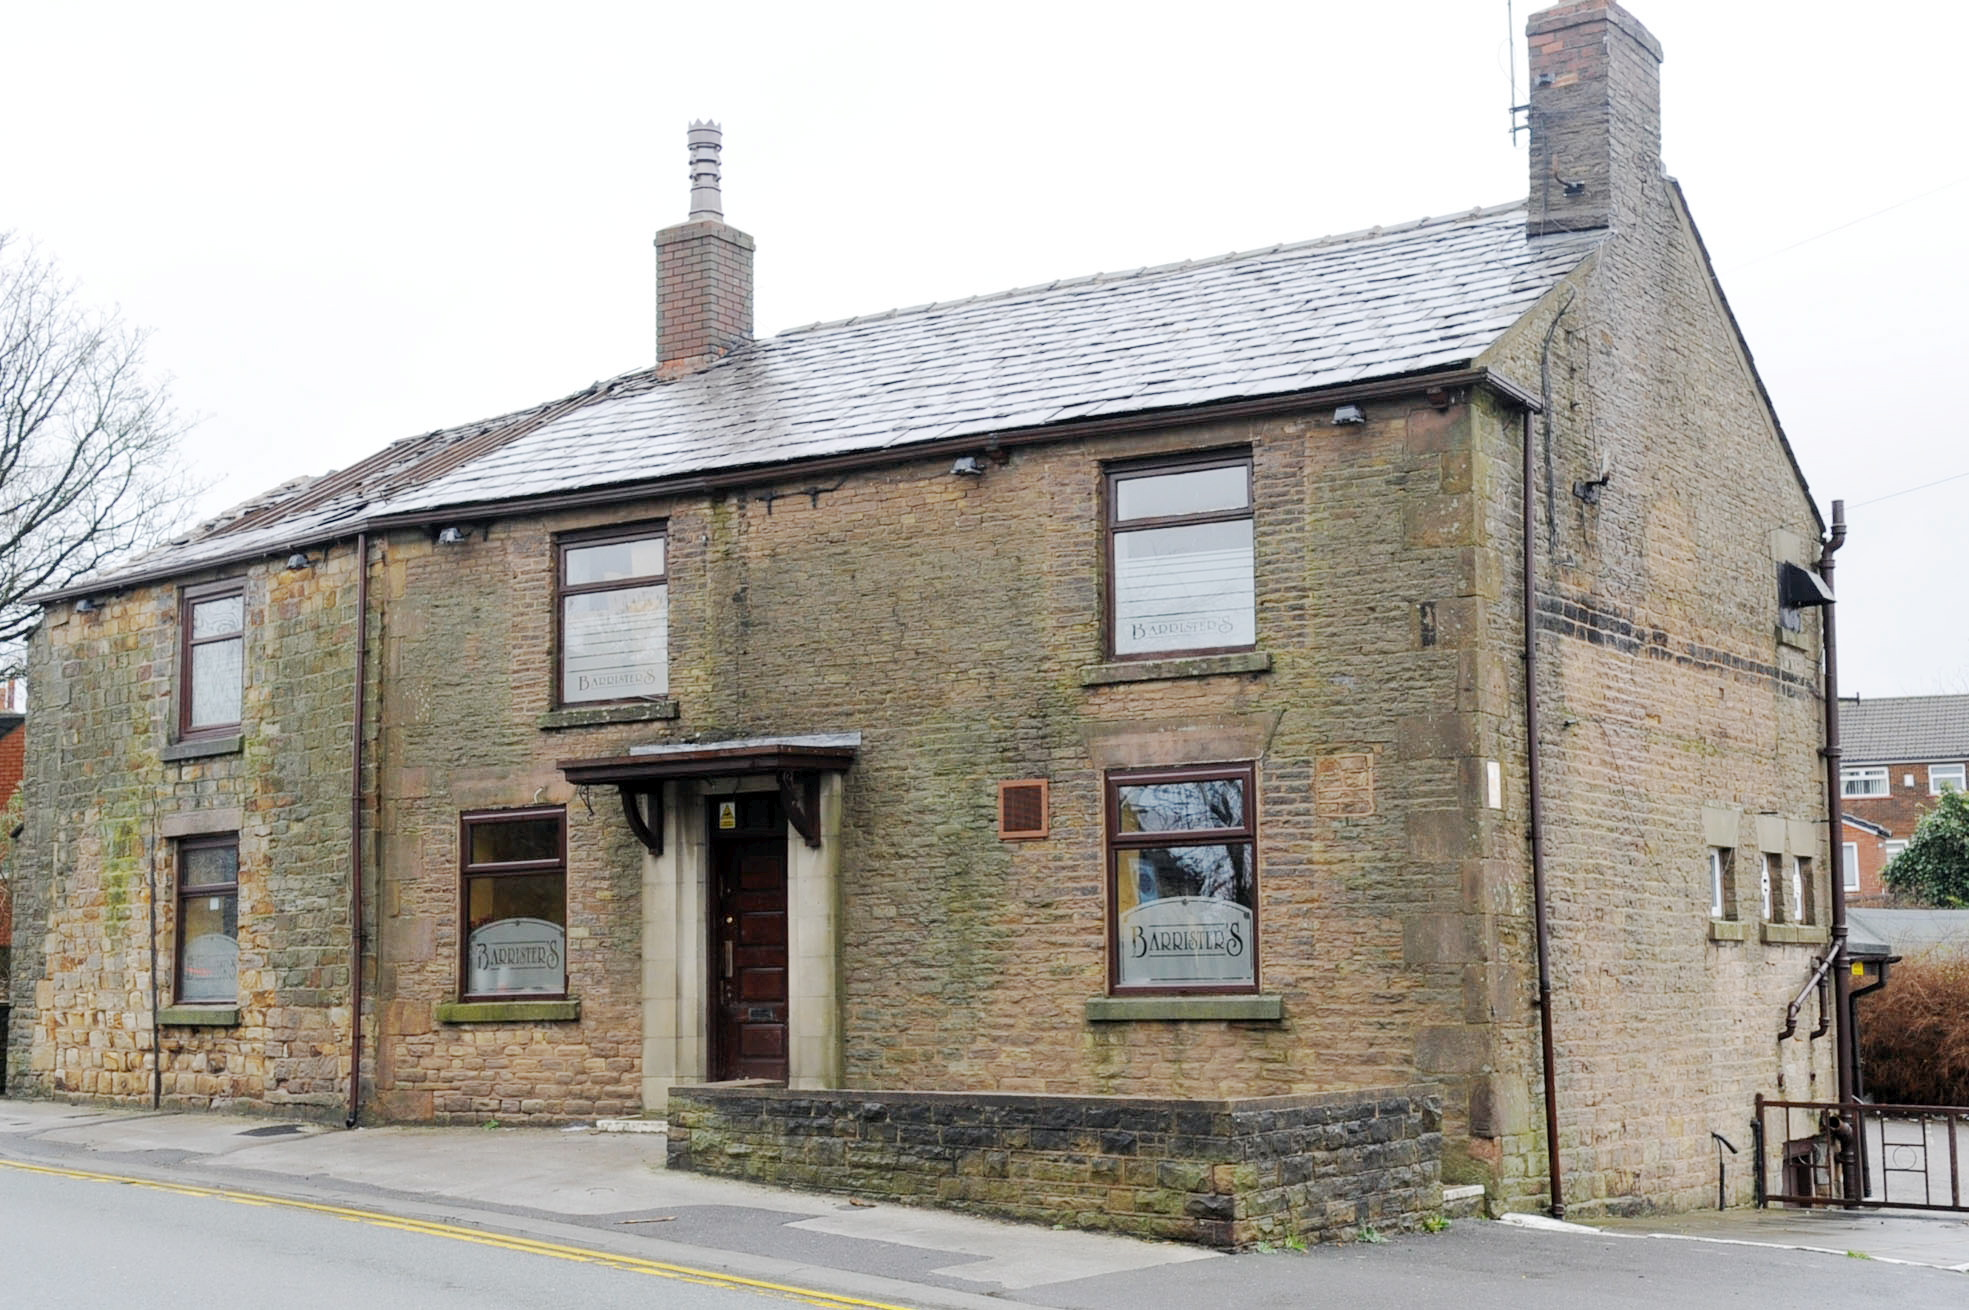 Historic Blackrod pub to be demolished to make way for houses